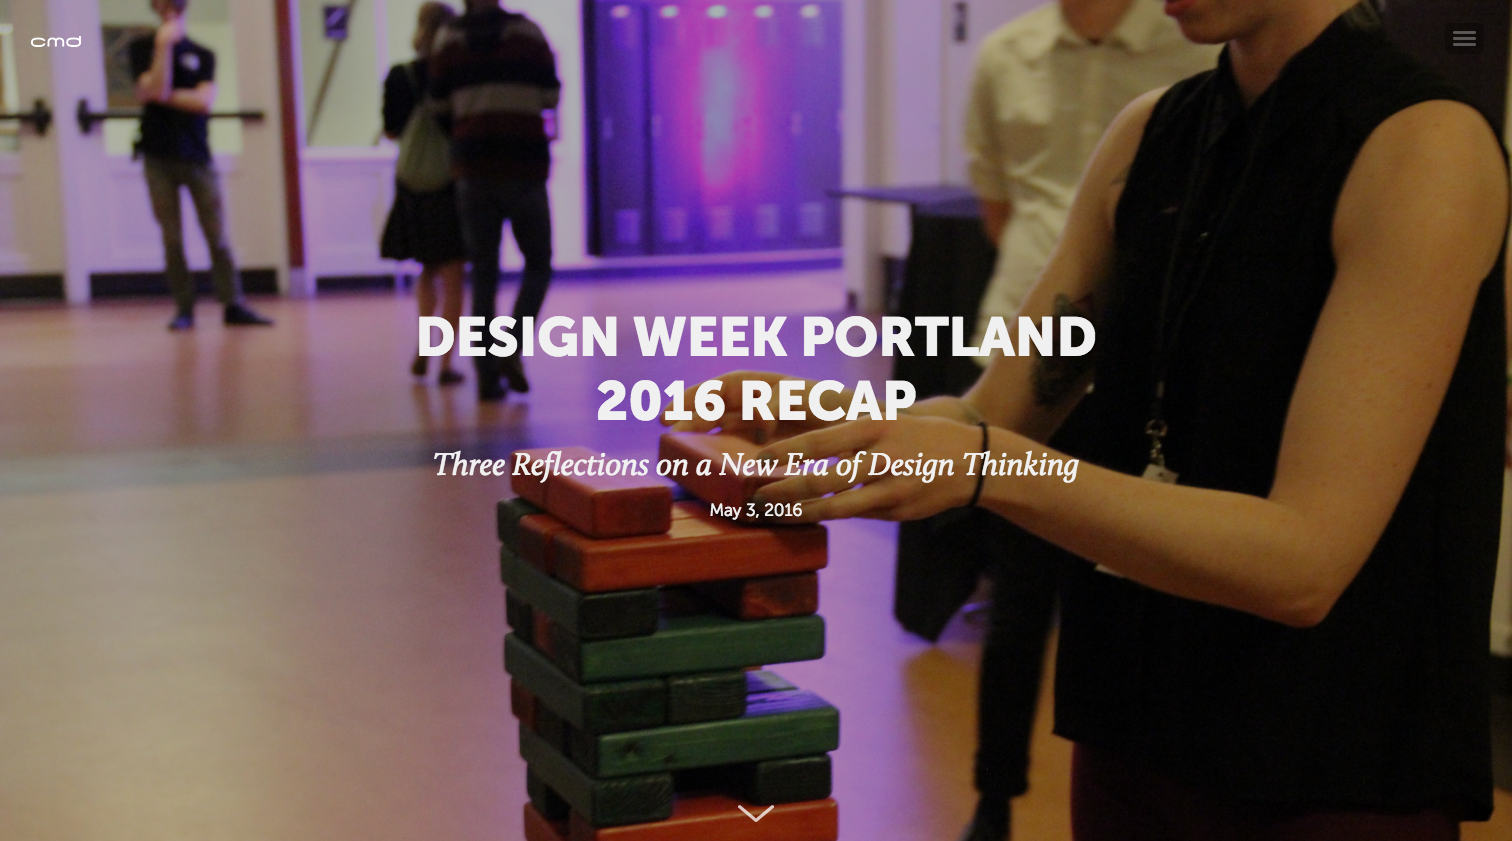 CLIENT:  CMD   ROLE:  Copywriter   SUMMARY:  Produced a thought leadership piece on my personal impressions of Portland, Oregon's design community and reflections on my time spent at Design Week Portland 2016.